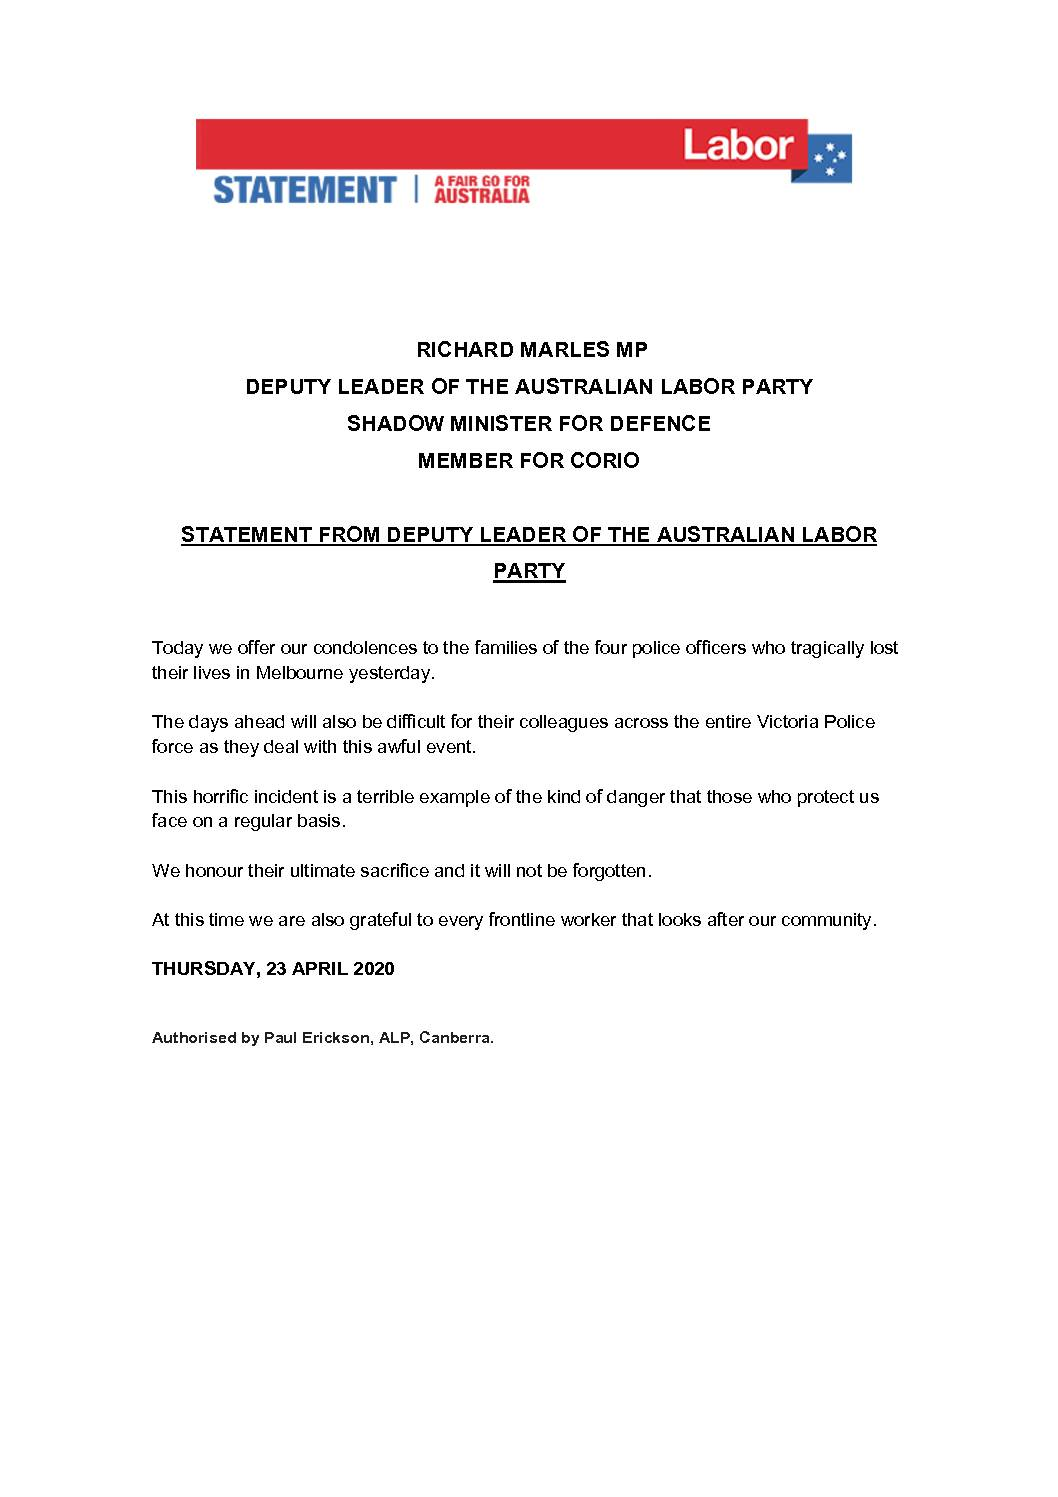 20.04.23-STATEMENT-FROM-DEPUTY-LEADER-OF-THE-AUSTRLALIAN-LABOR-PARTY